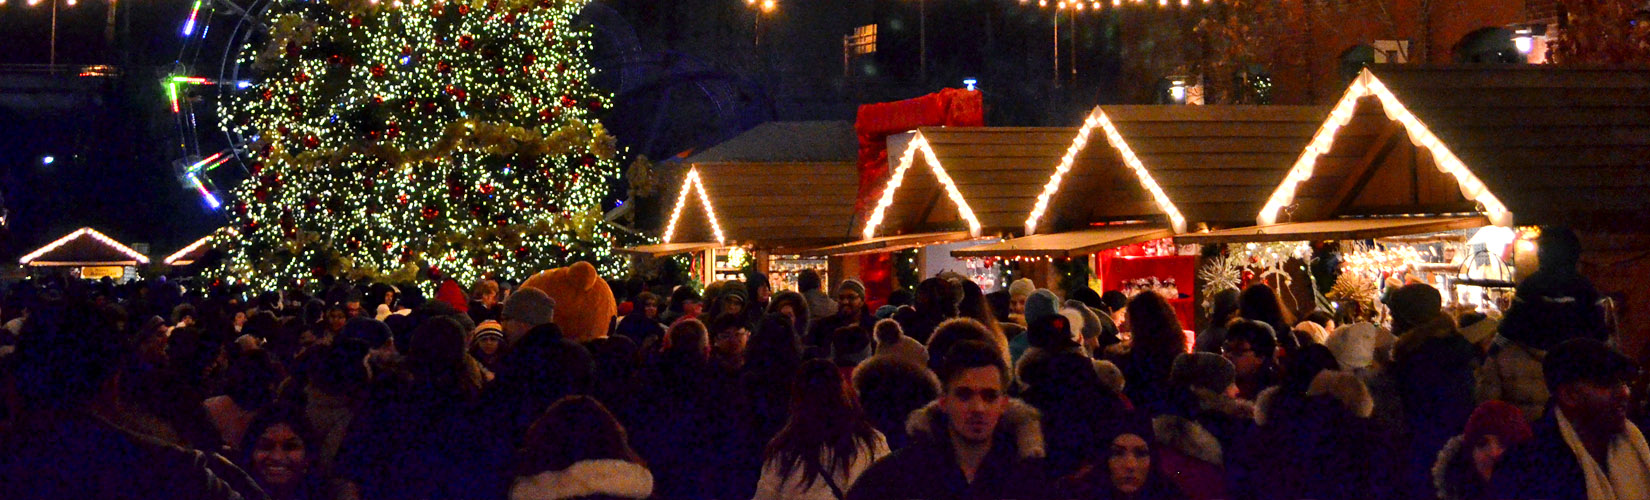 Ontario Christmas Markets Yule Absolutely Adore » I've Been Bit :: A Travel Blog